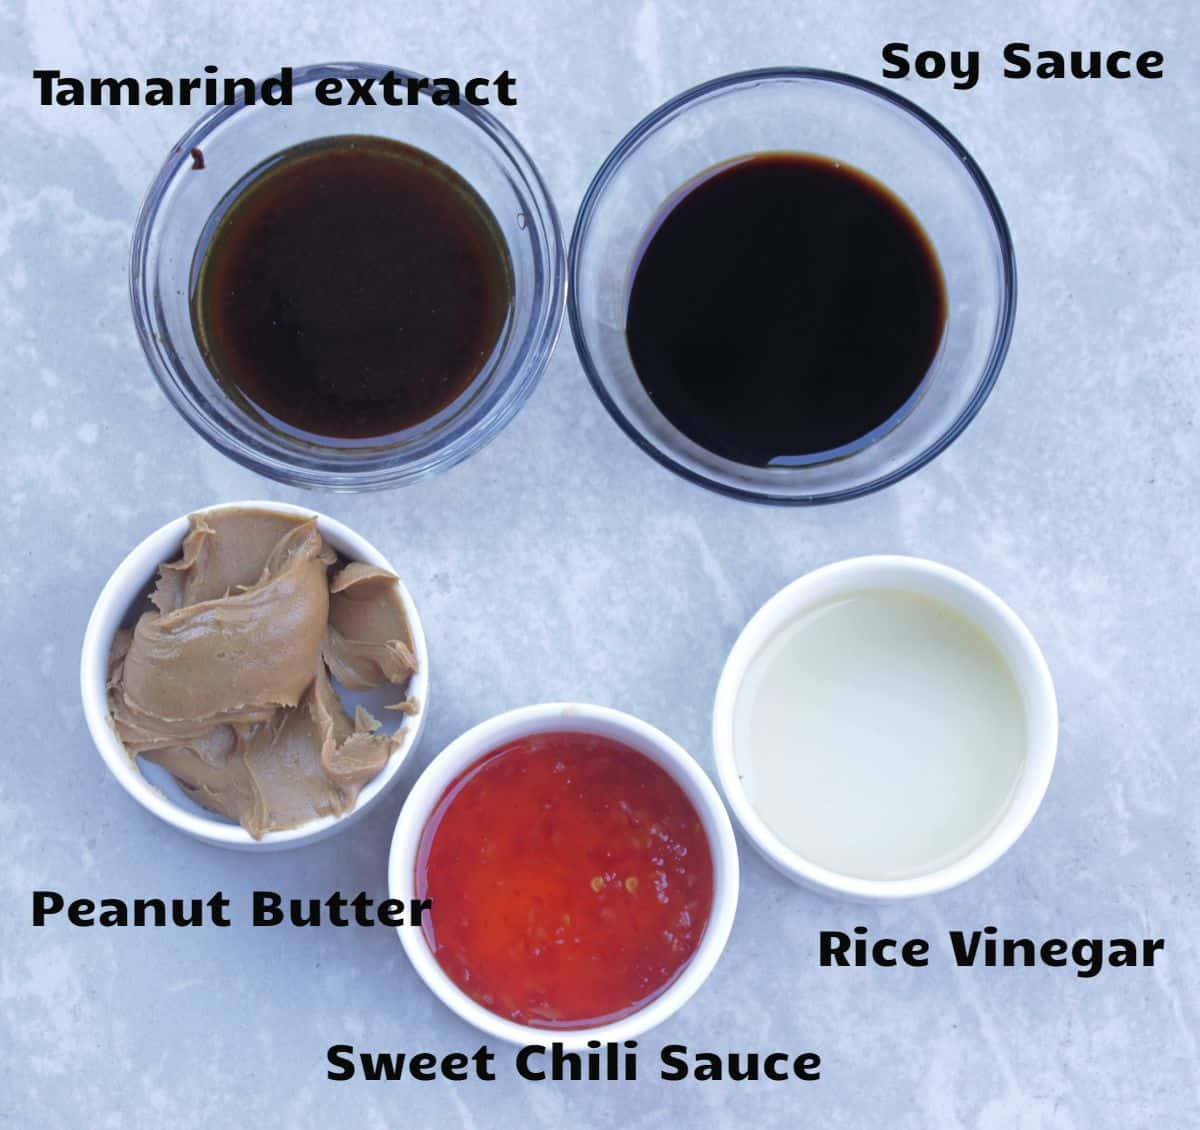 Ingredients needed to make spicy Thai sauce